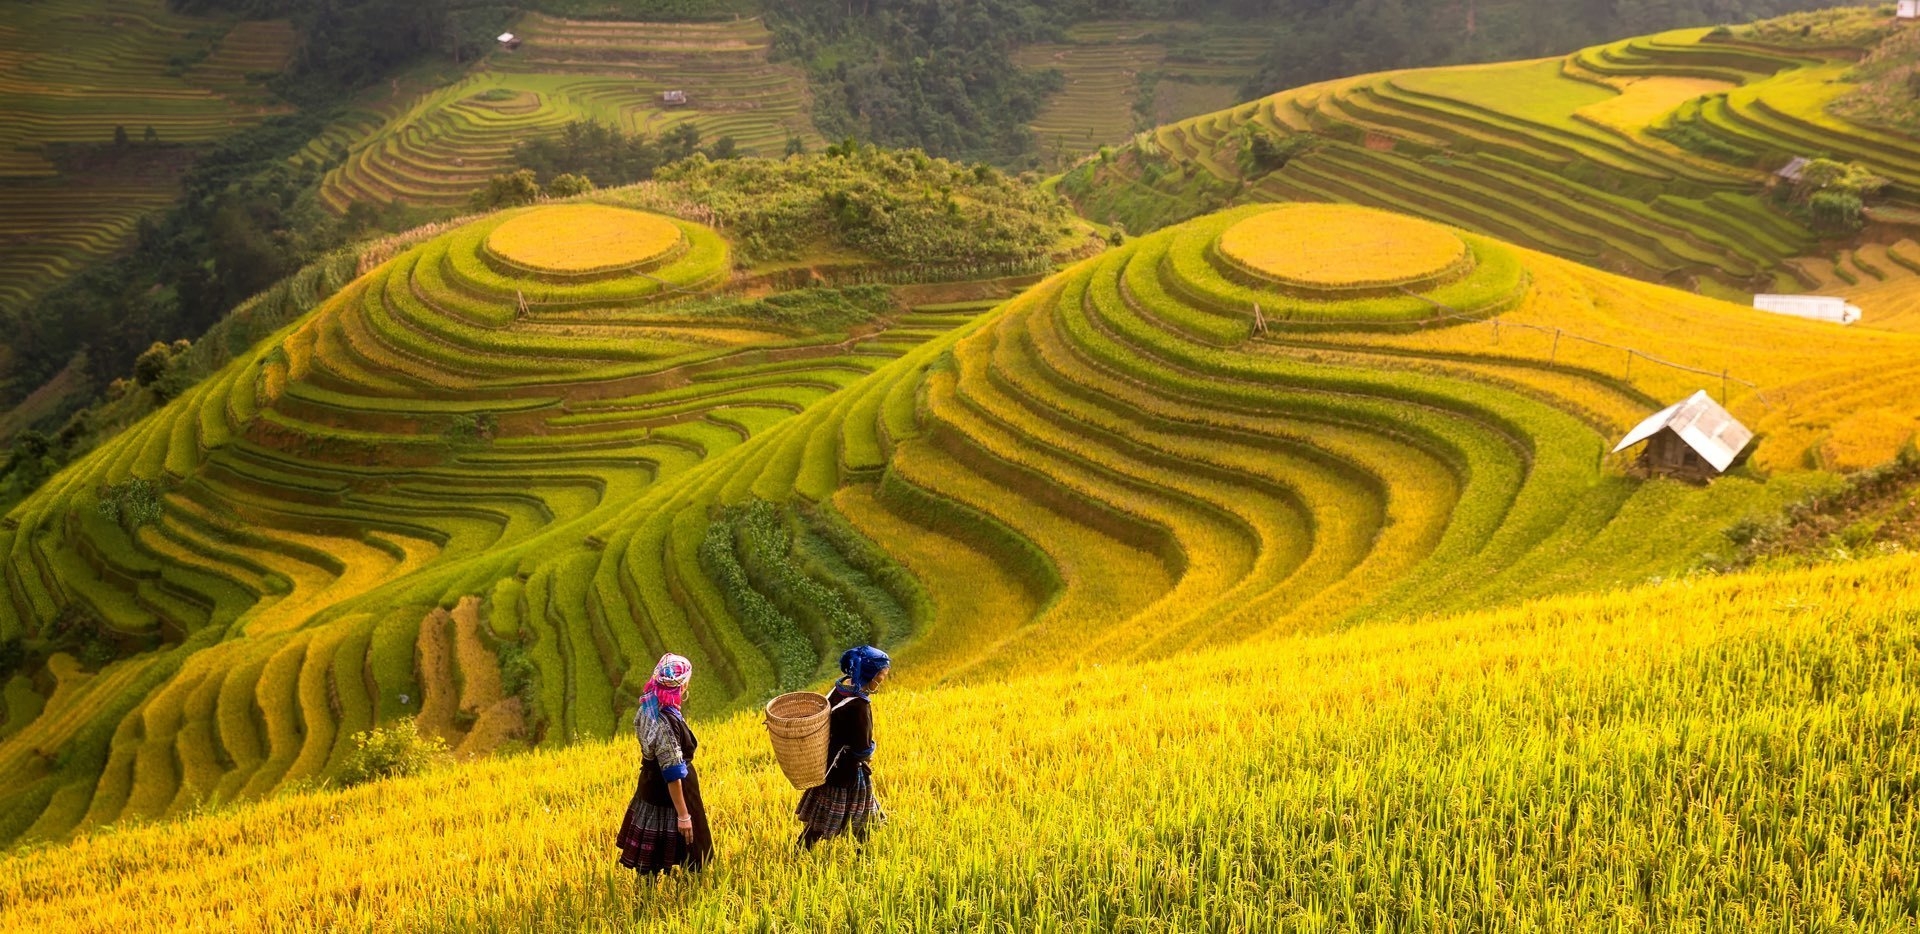 Two people on terraced fields